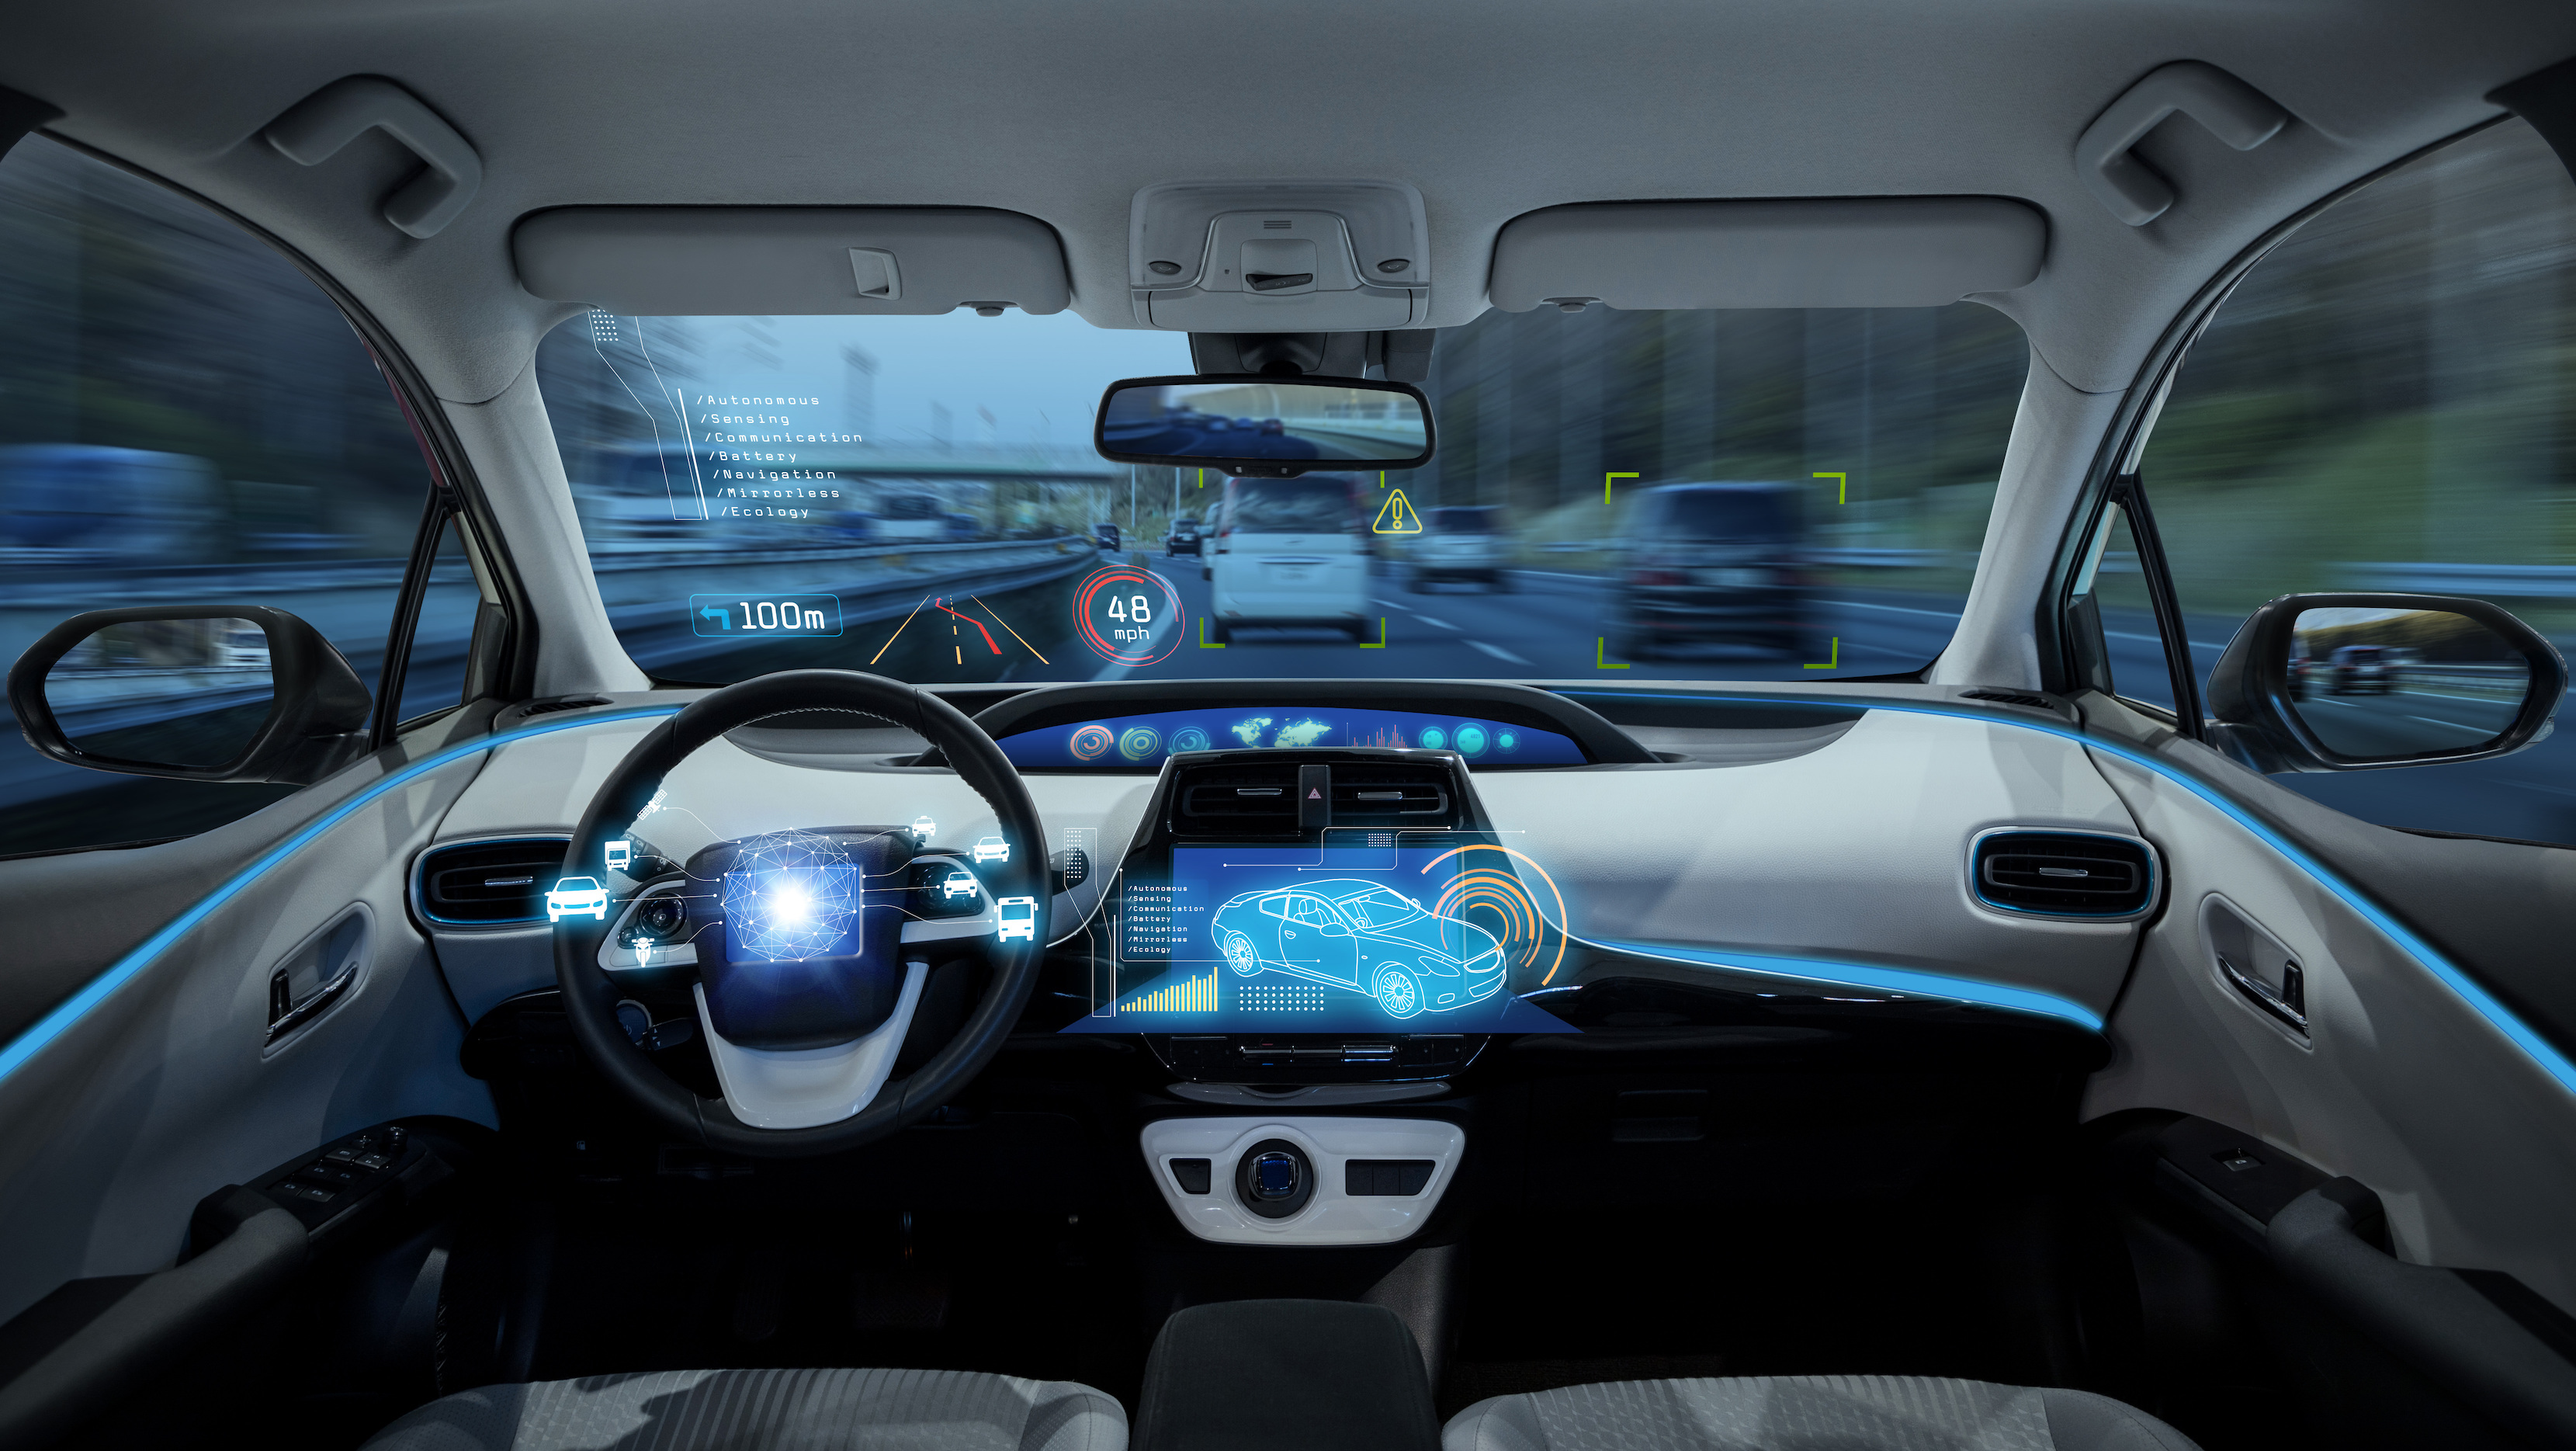 Autonomous vehicles show a reduction in lifetime energy use and greenhouse gas emissions when compared to conventional vehicles.